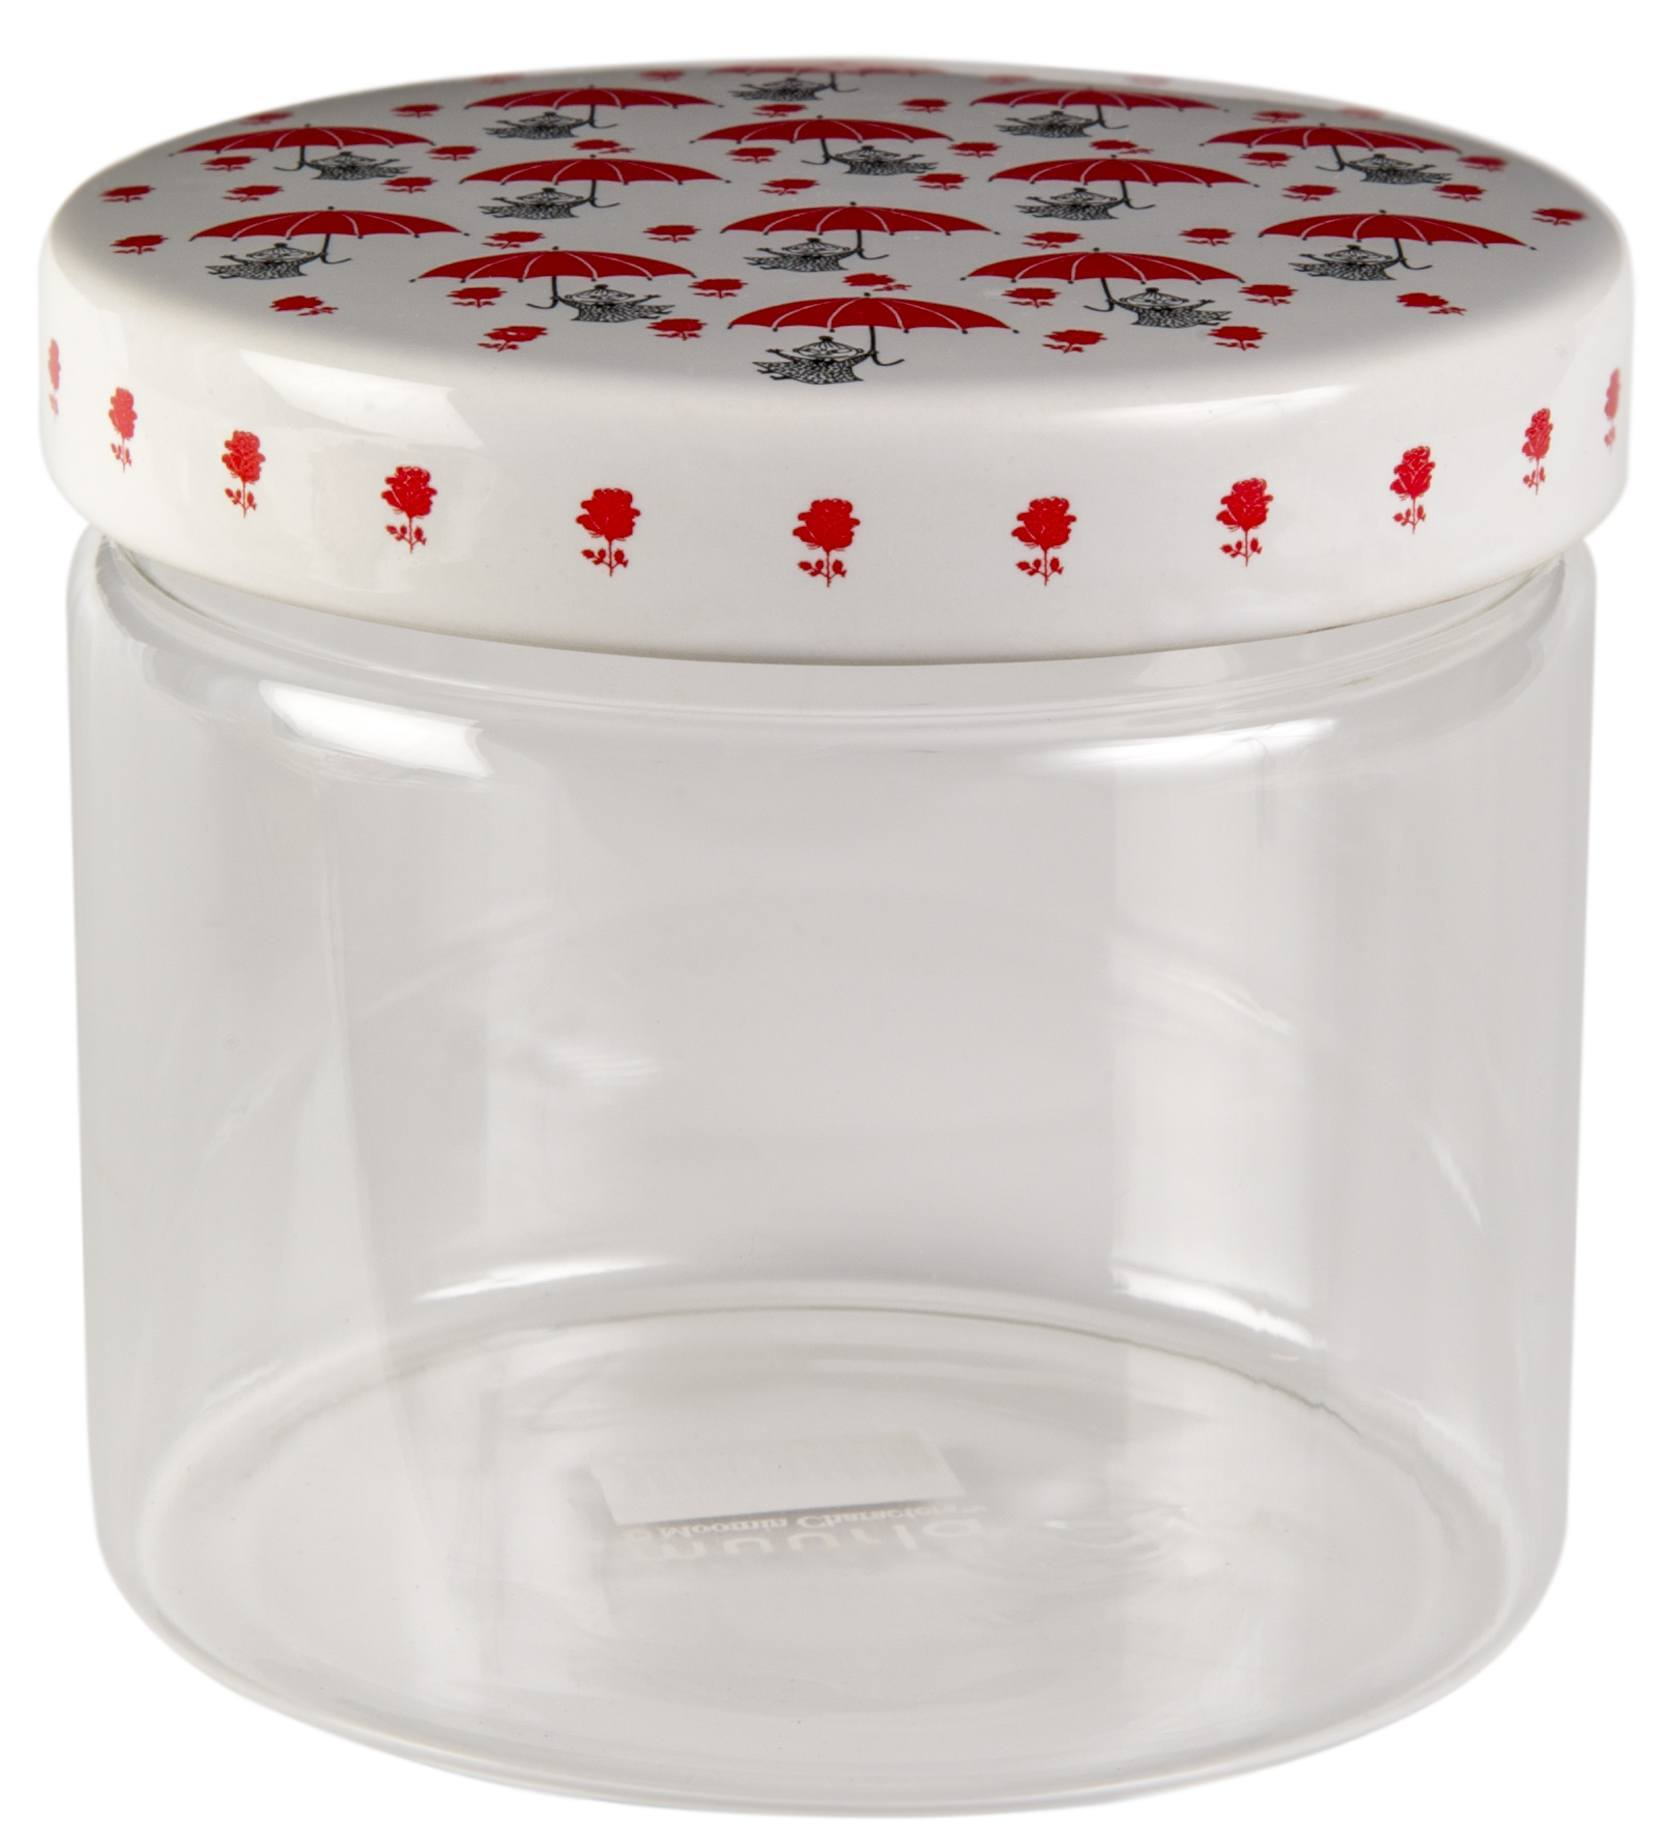 Muurla glass jar 11cm Little My